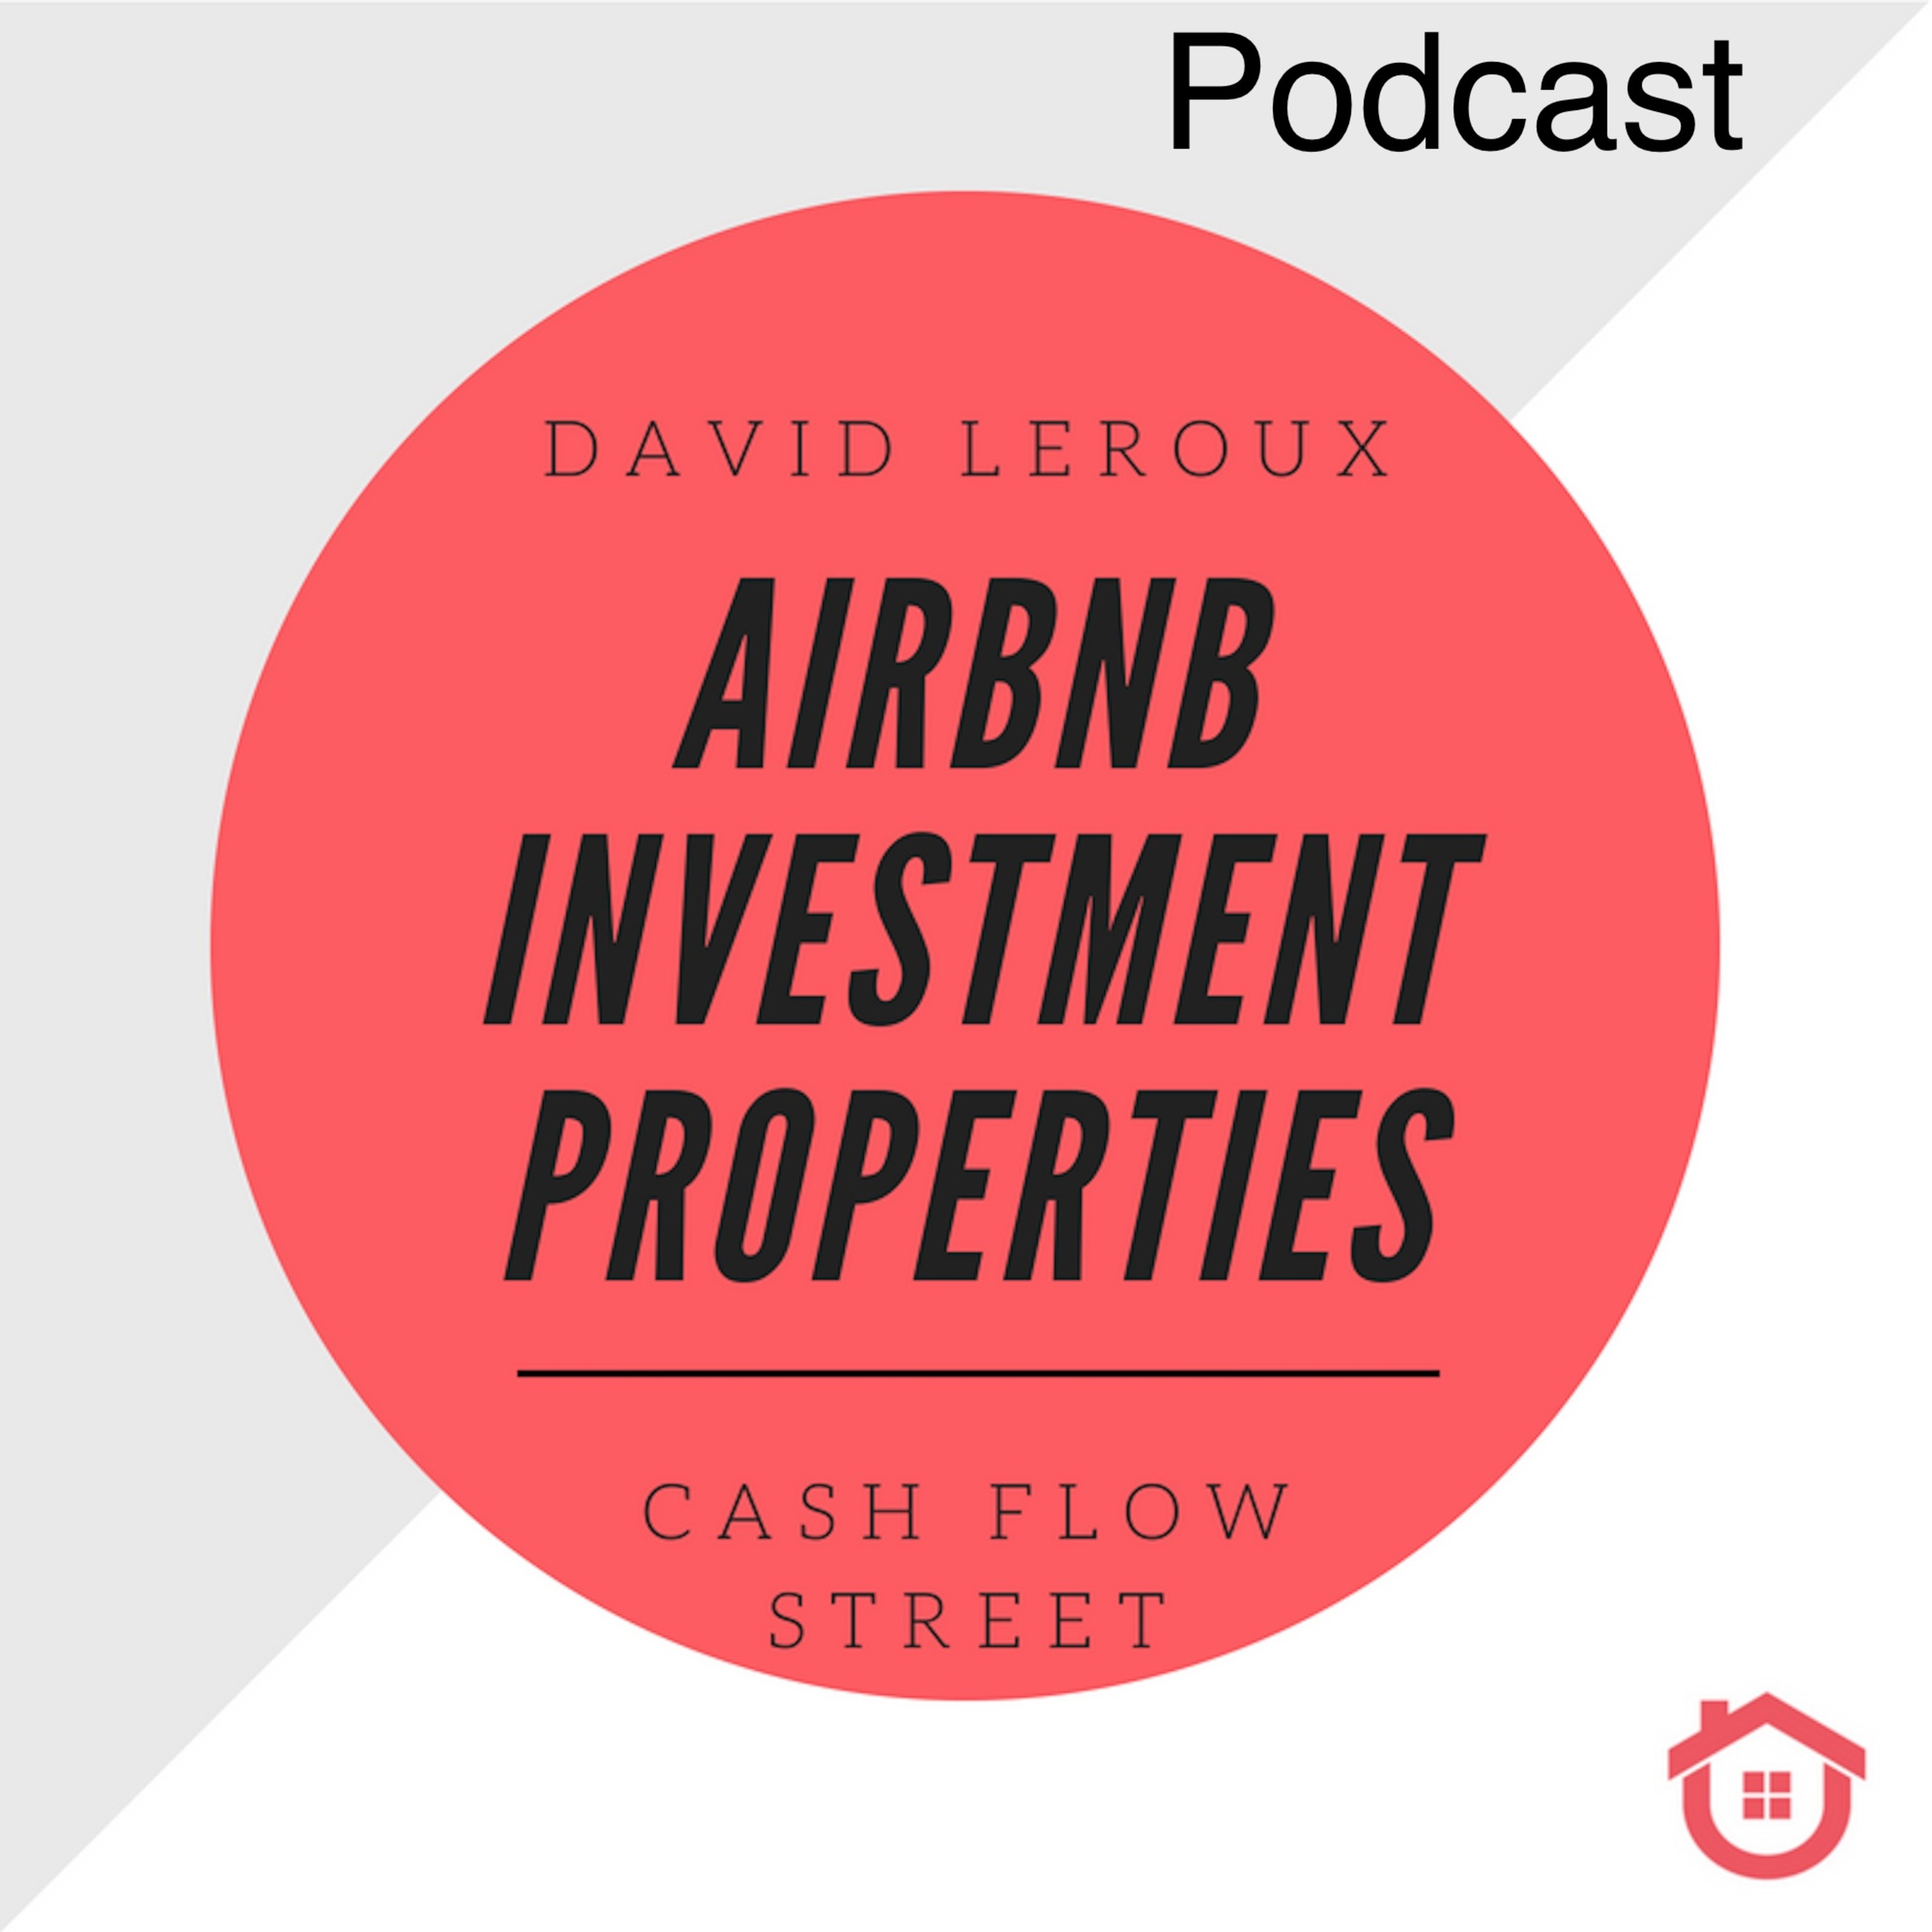 Episode 62: How to use Ring Door Bell to increase your Airbnb revenue by 10%?